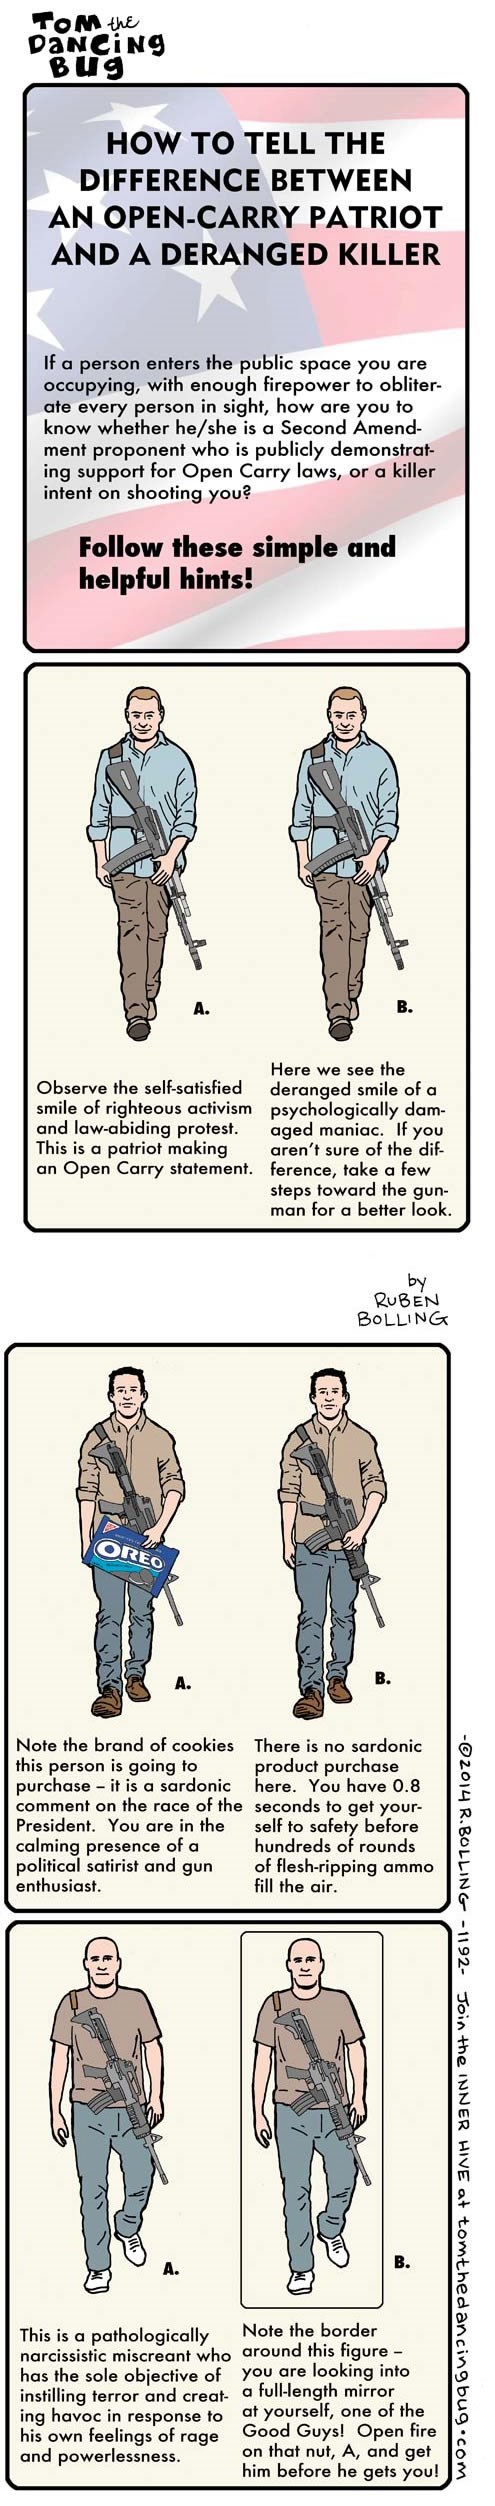 guns,sick truth,laws,sad but true,open carry,web comics